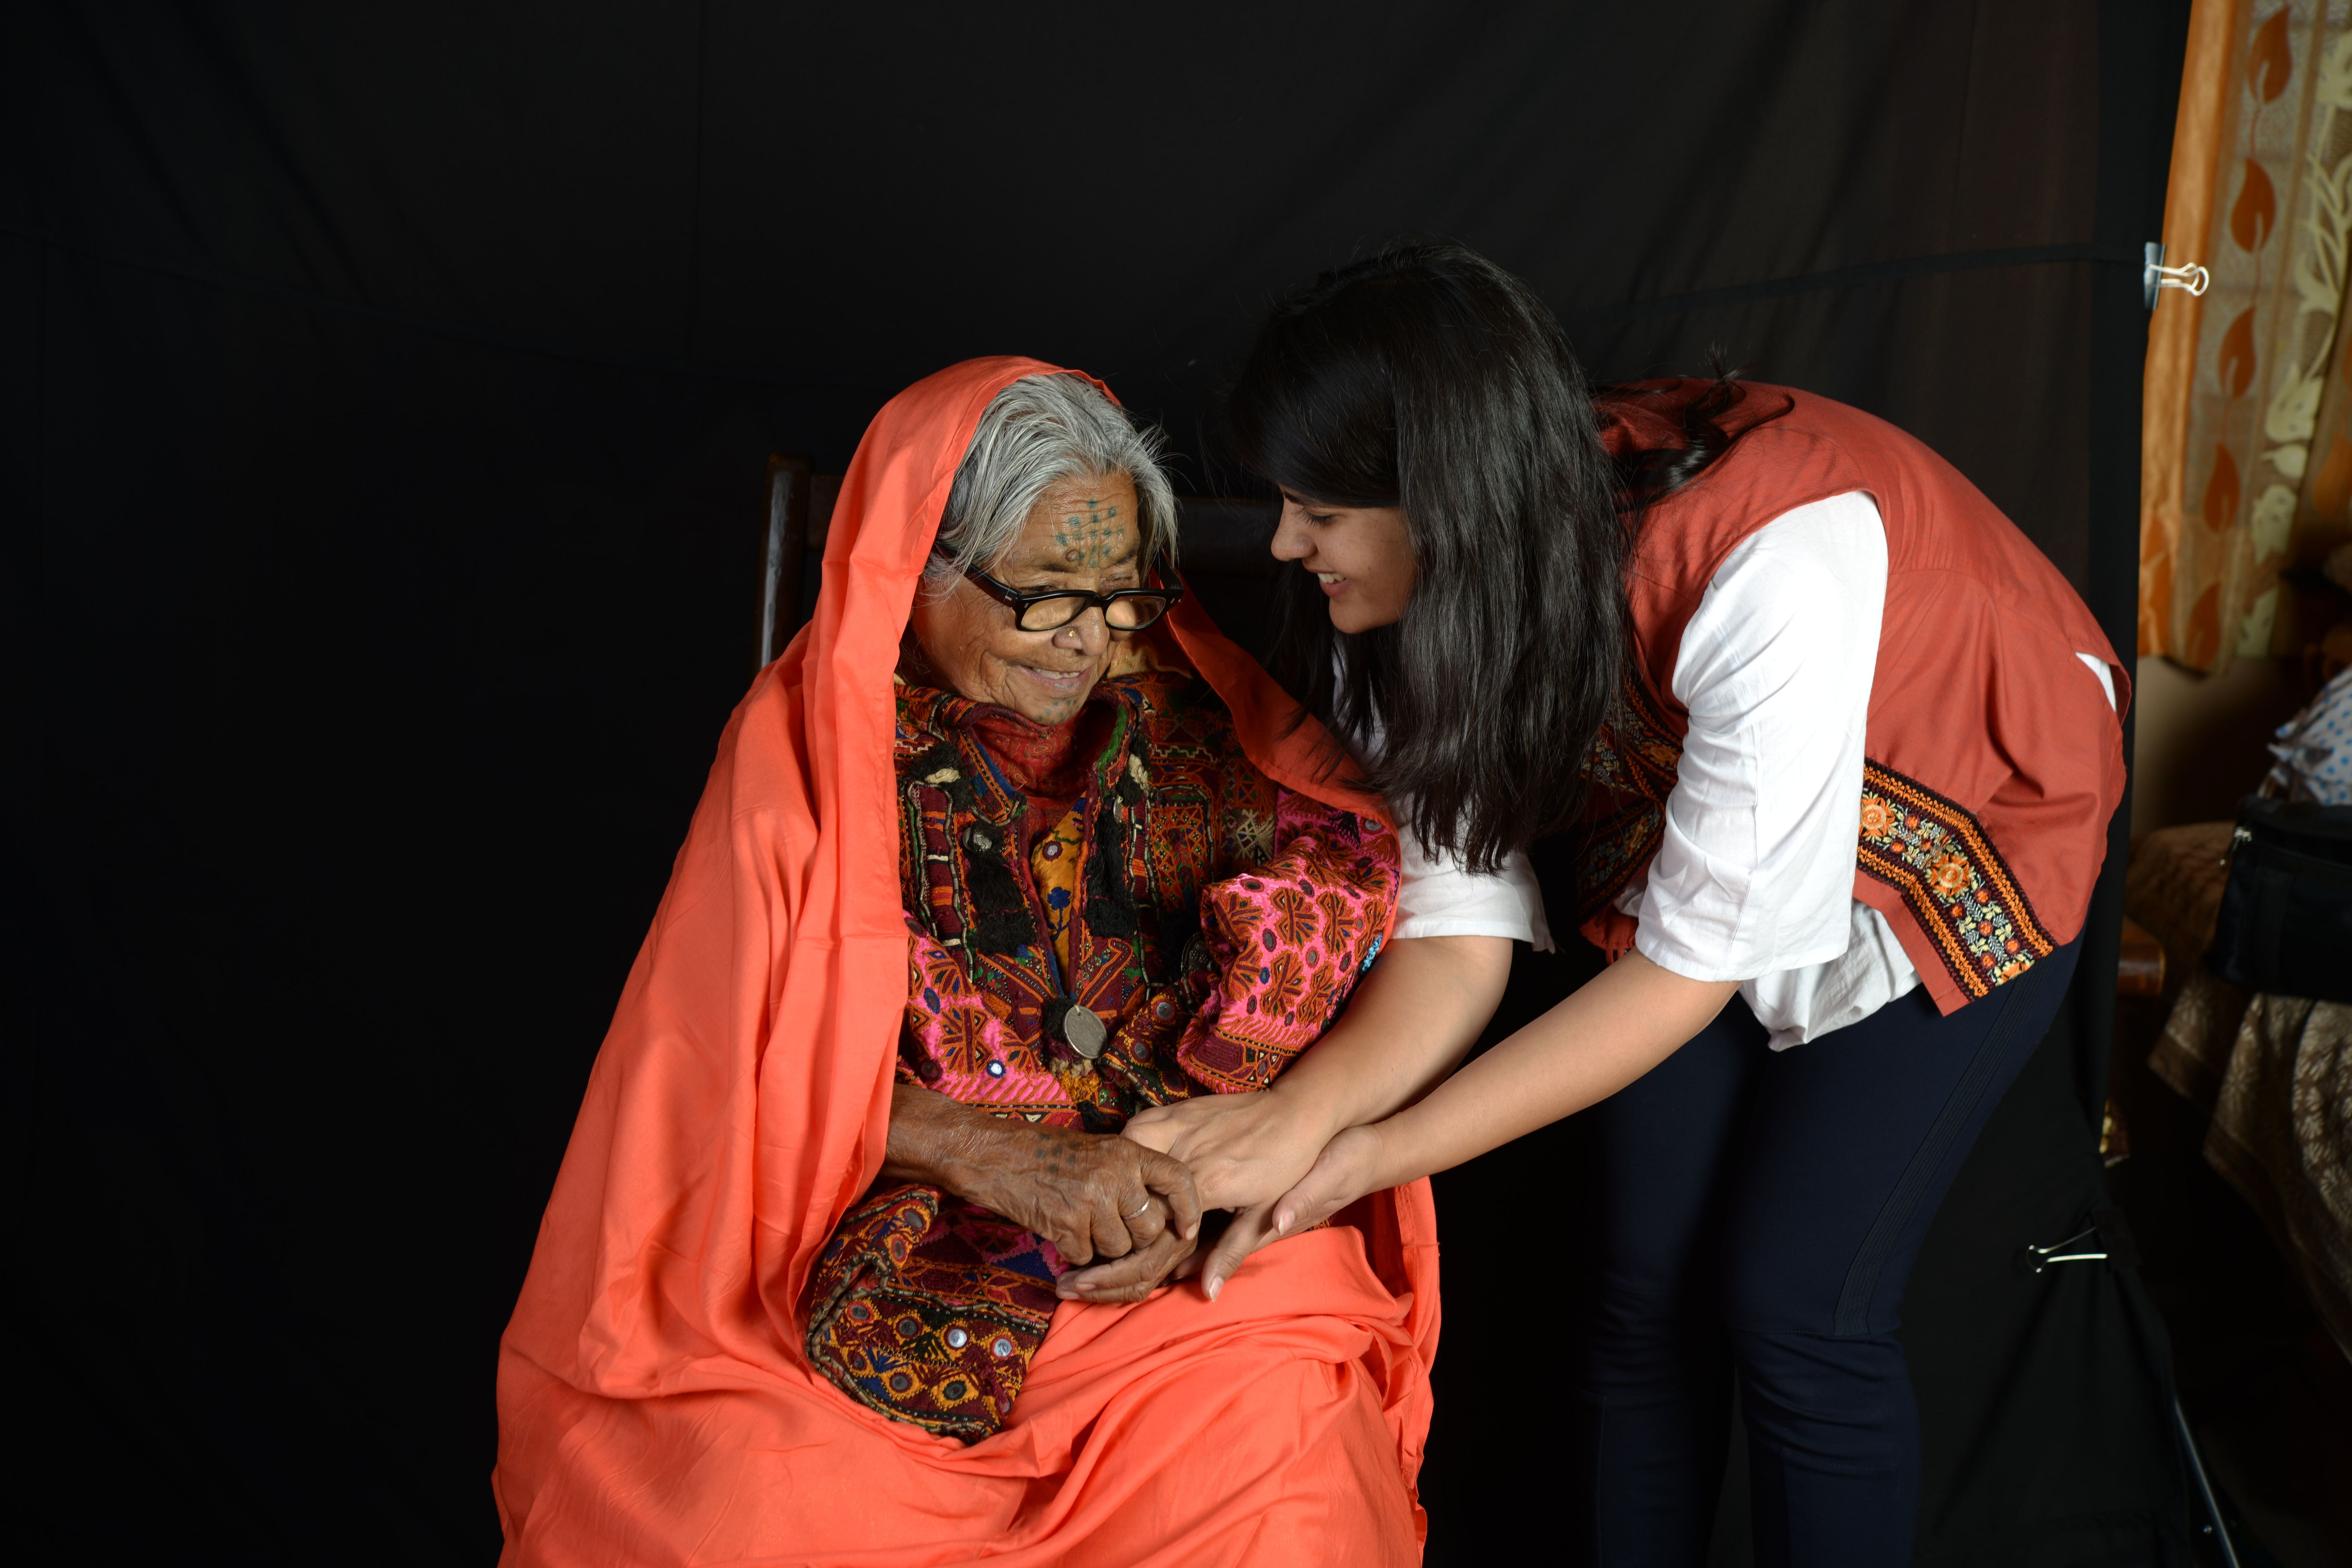 Hindu Pashtun: How One Woman Uncovered India's Forgotten Links to